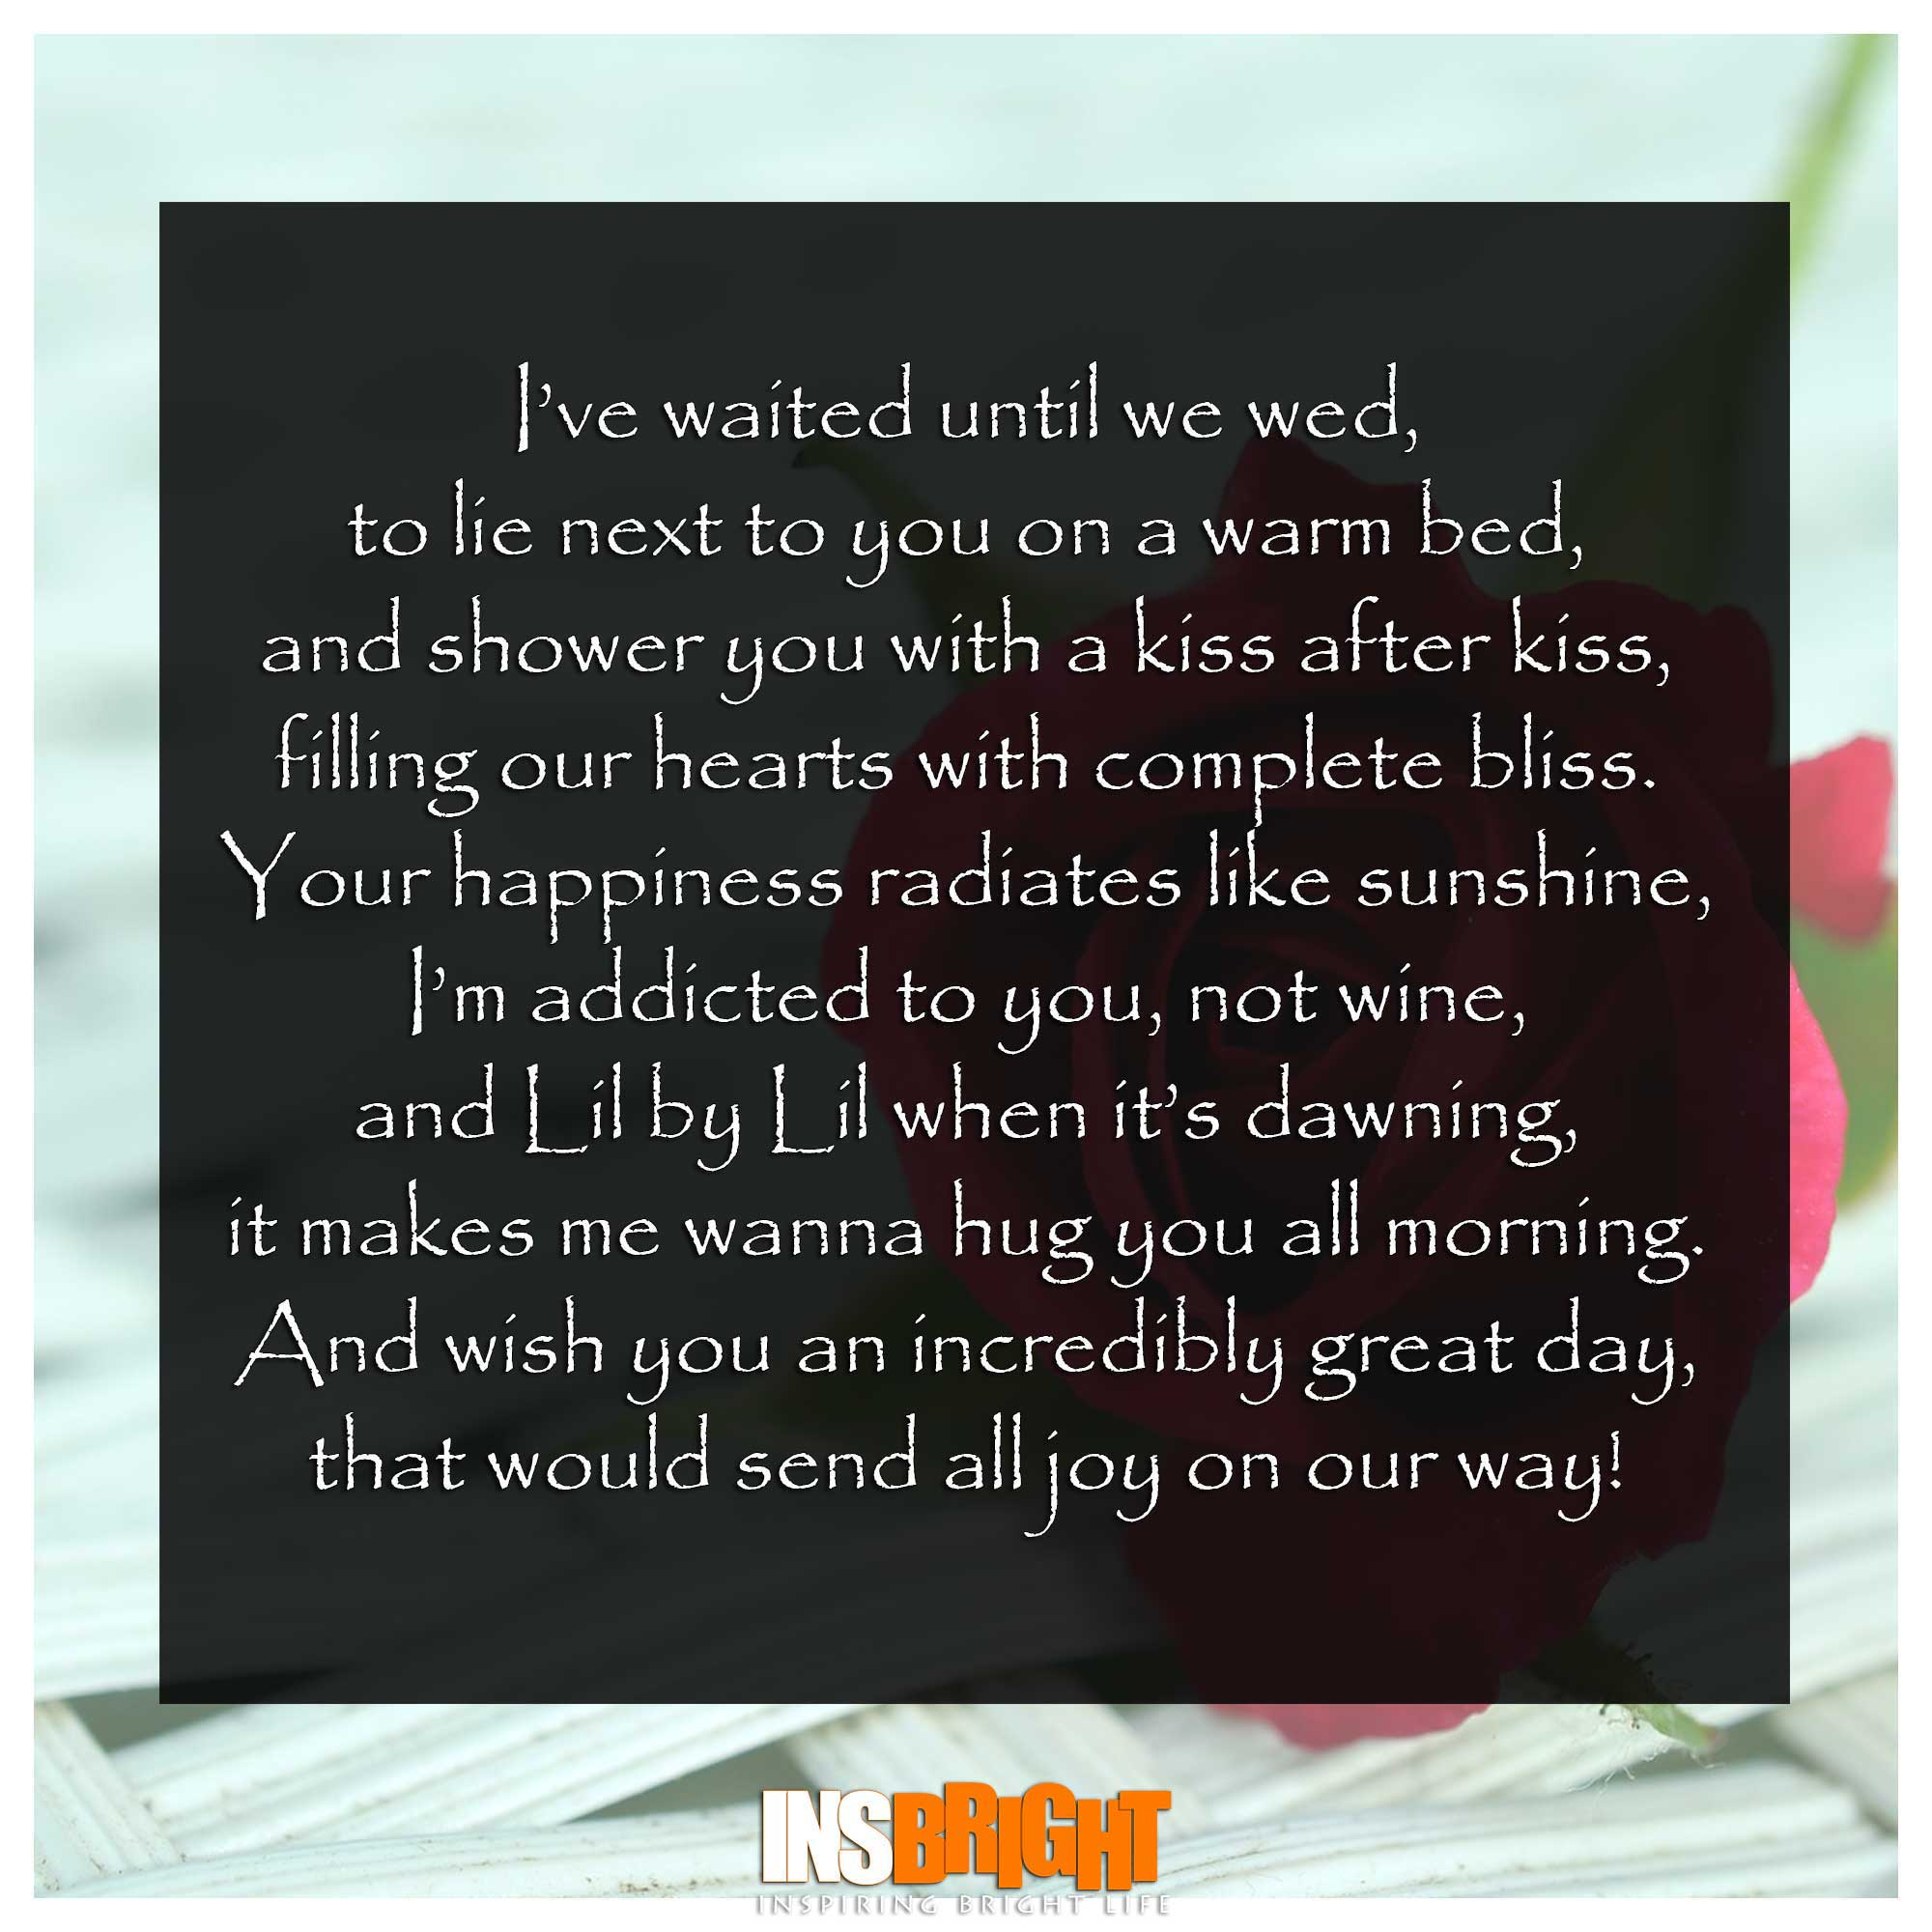 10 Inspirational Short Good Morning Poems With Images | Insbright